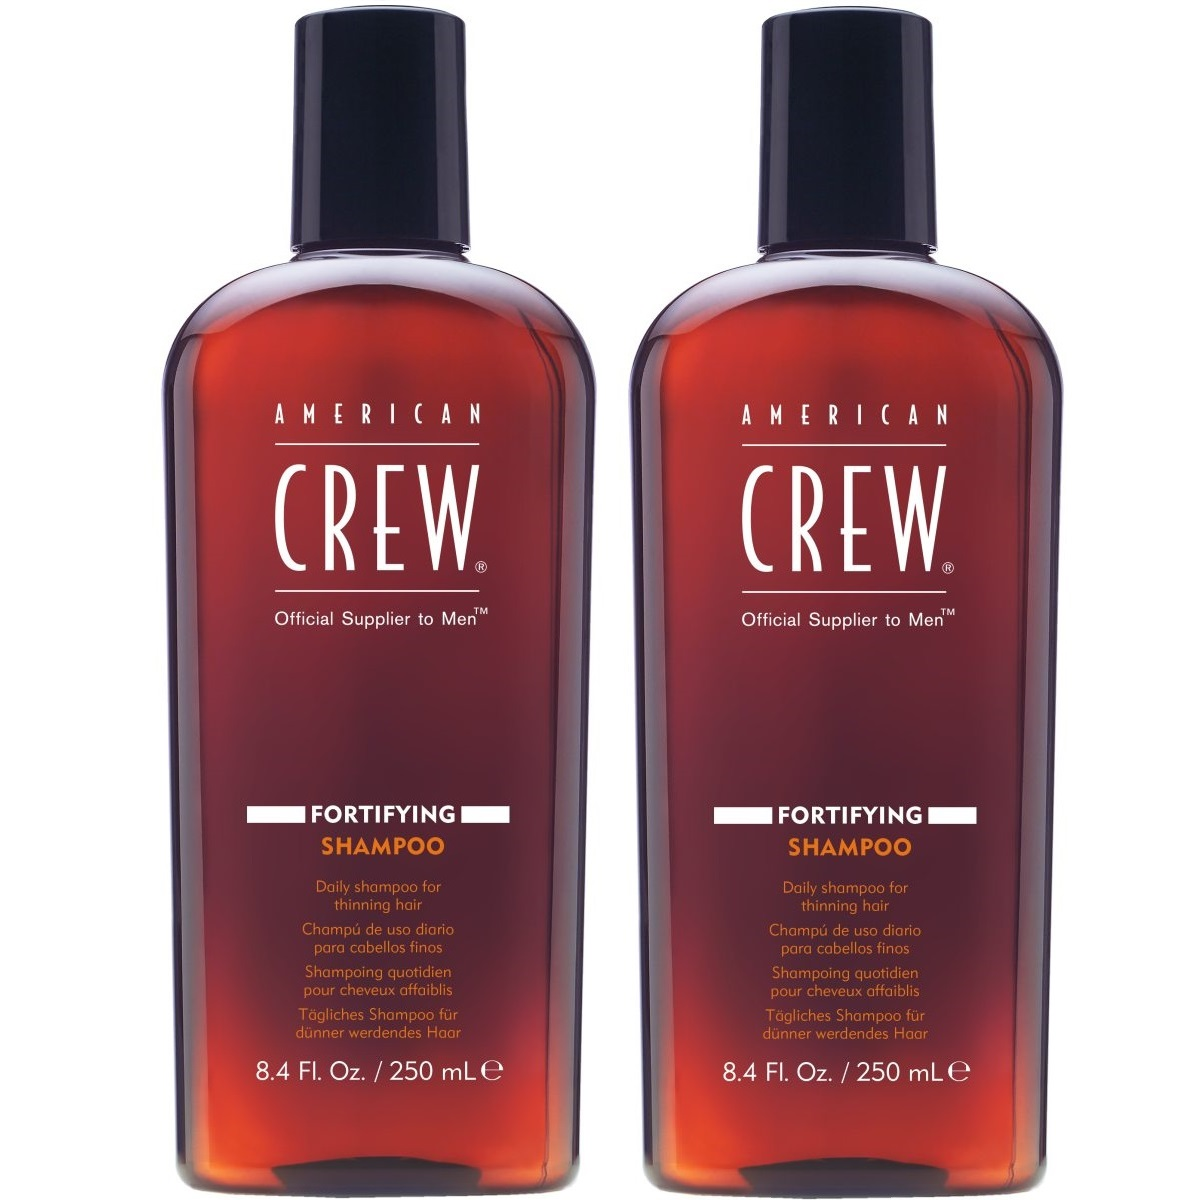 14_Emphase_american-crew-duo_fortifying-shampoo-250ml